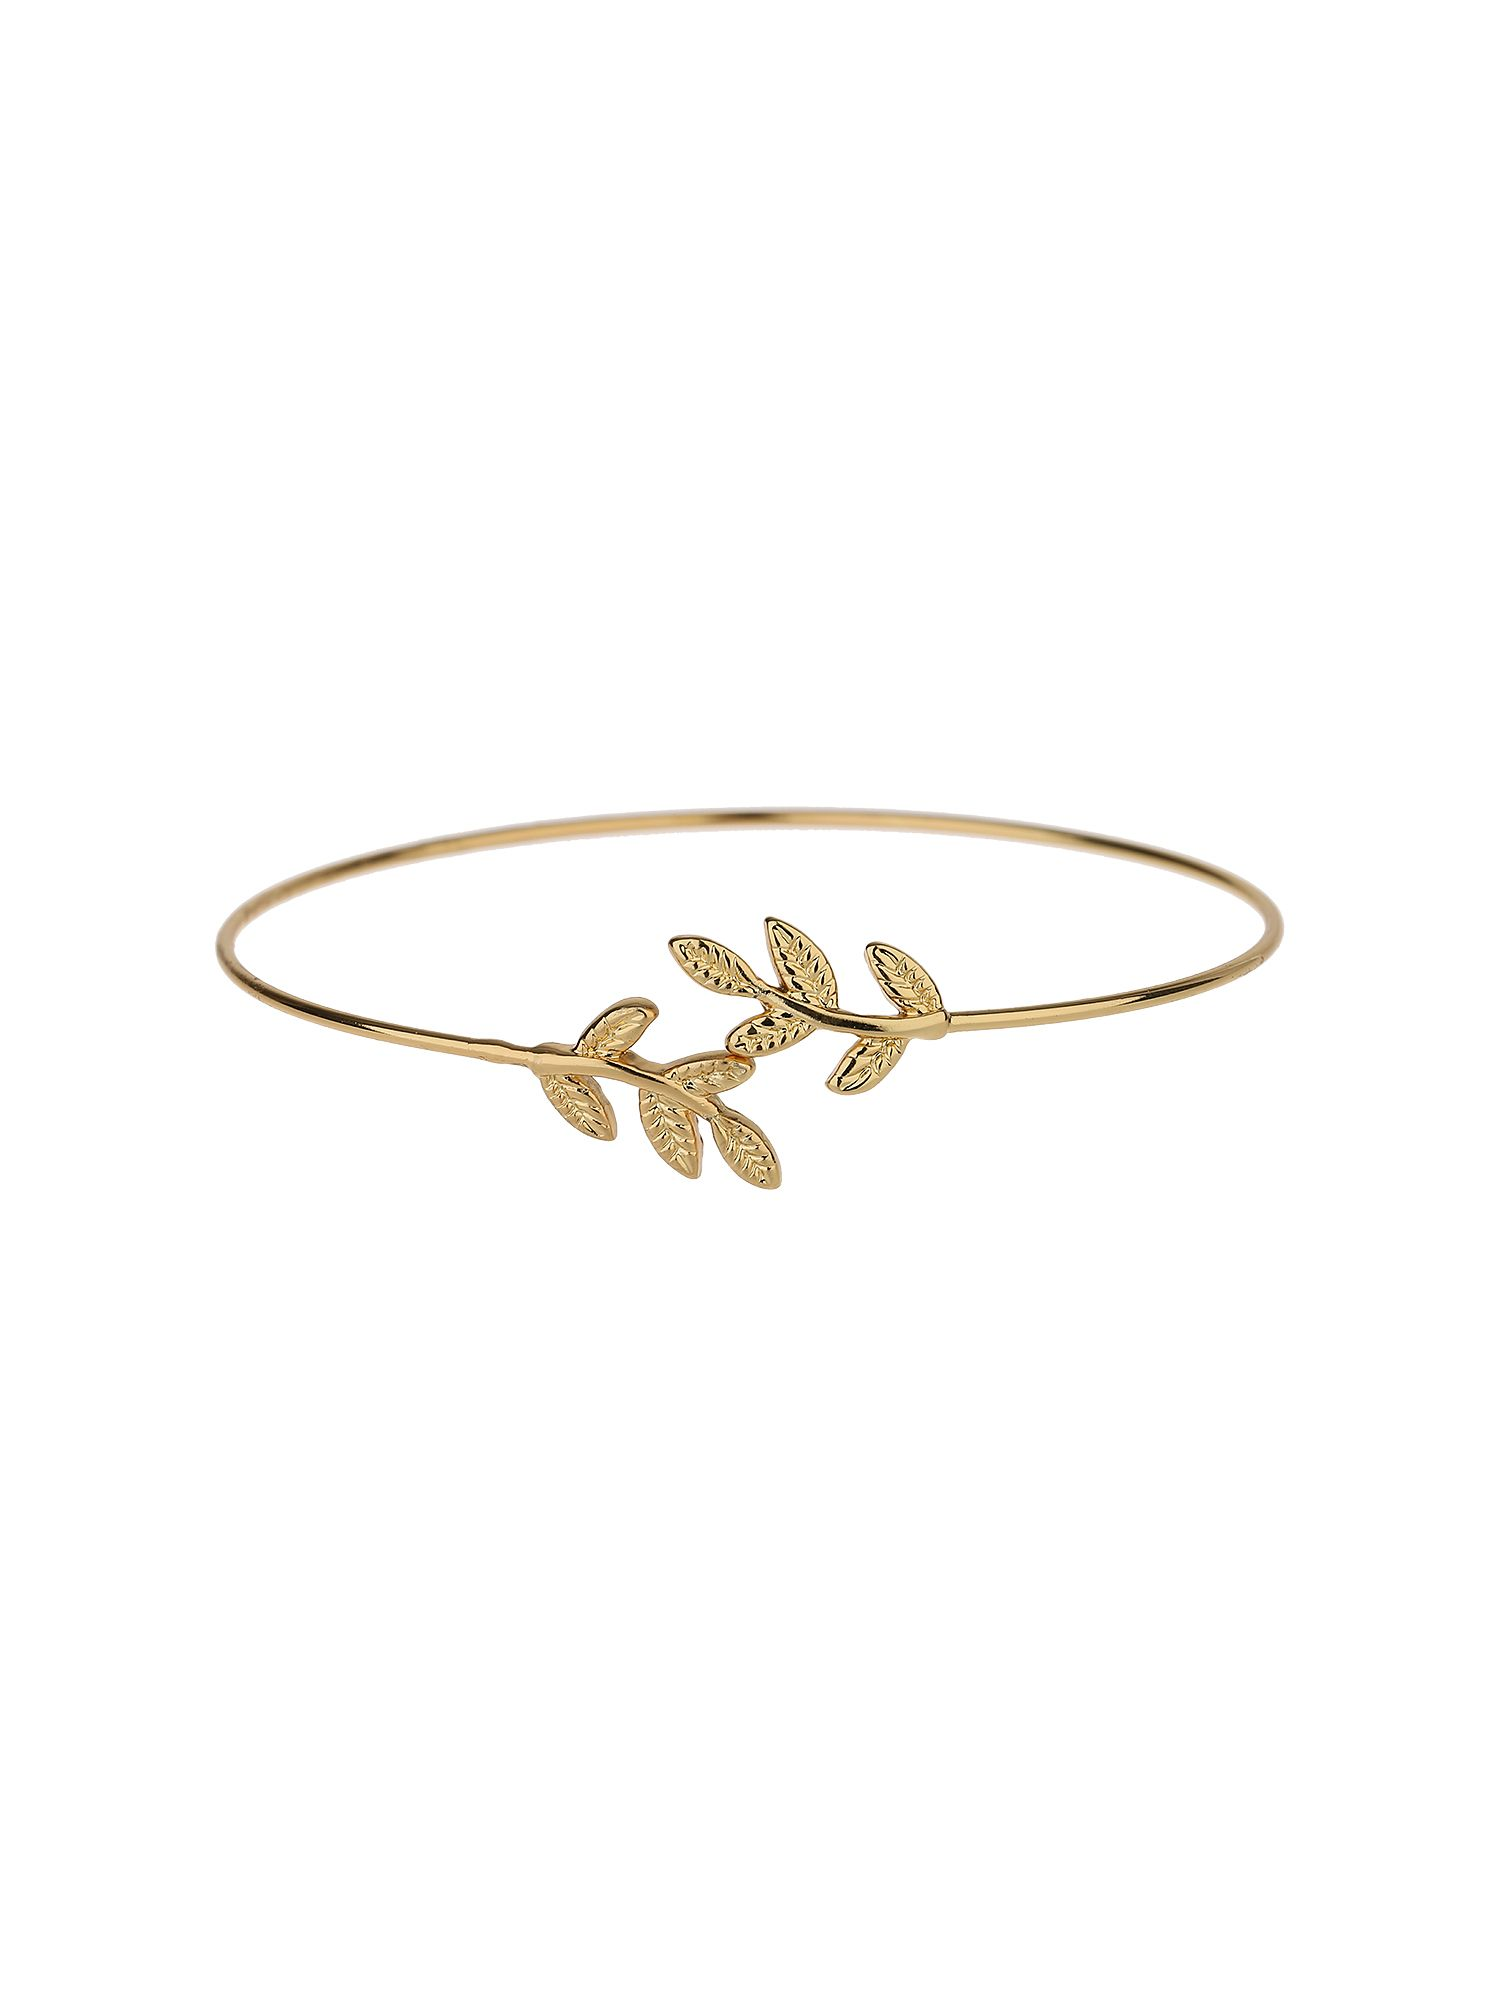 Mikey Flower cap end  wire cuff bracelet NA